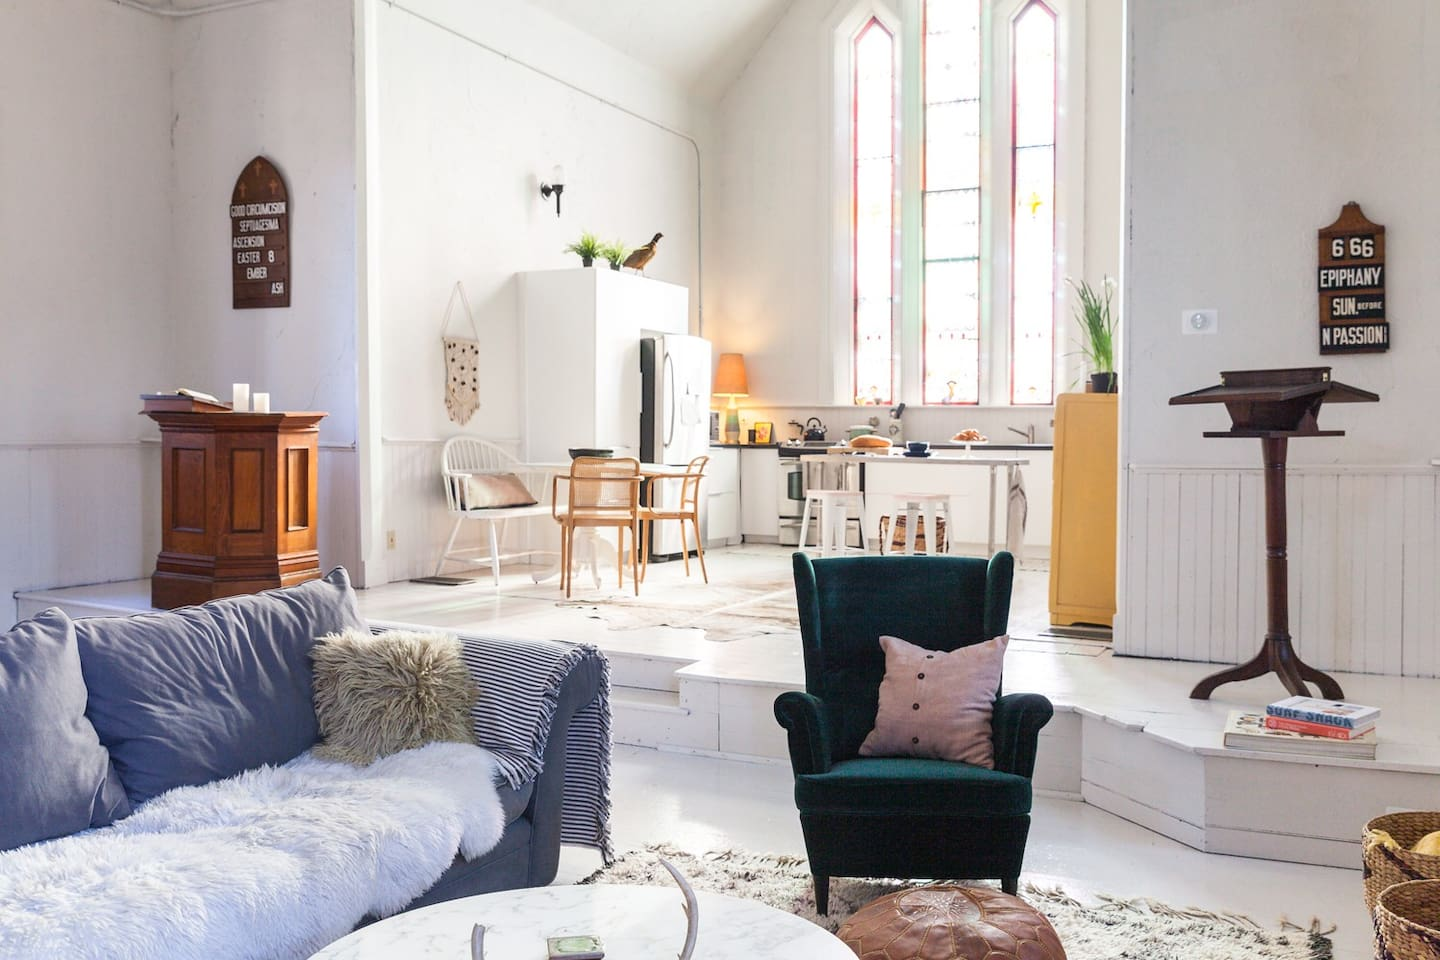 Original items from the chapel decorate the open-concept living space. (Photo: Lauren Kolyn)